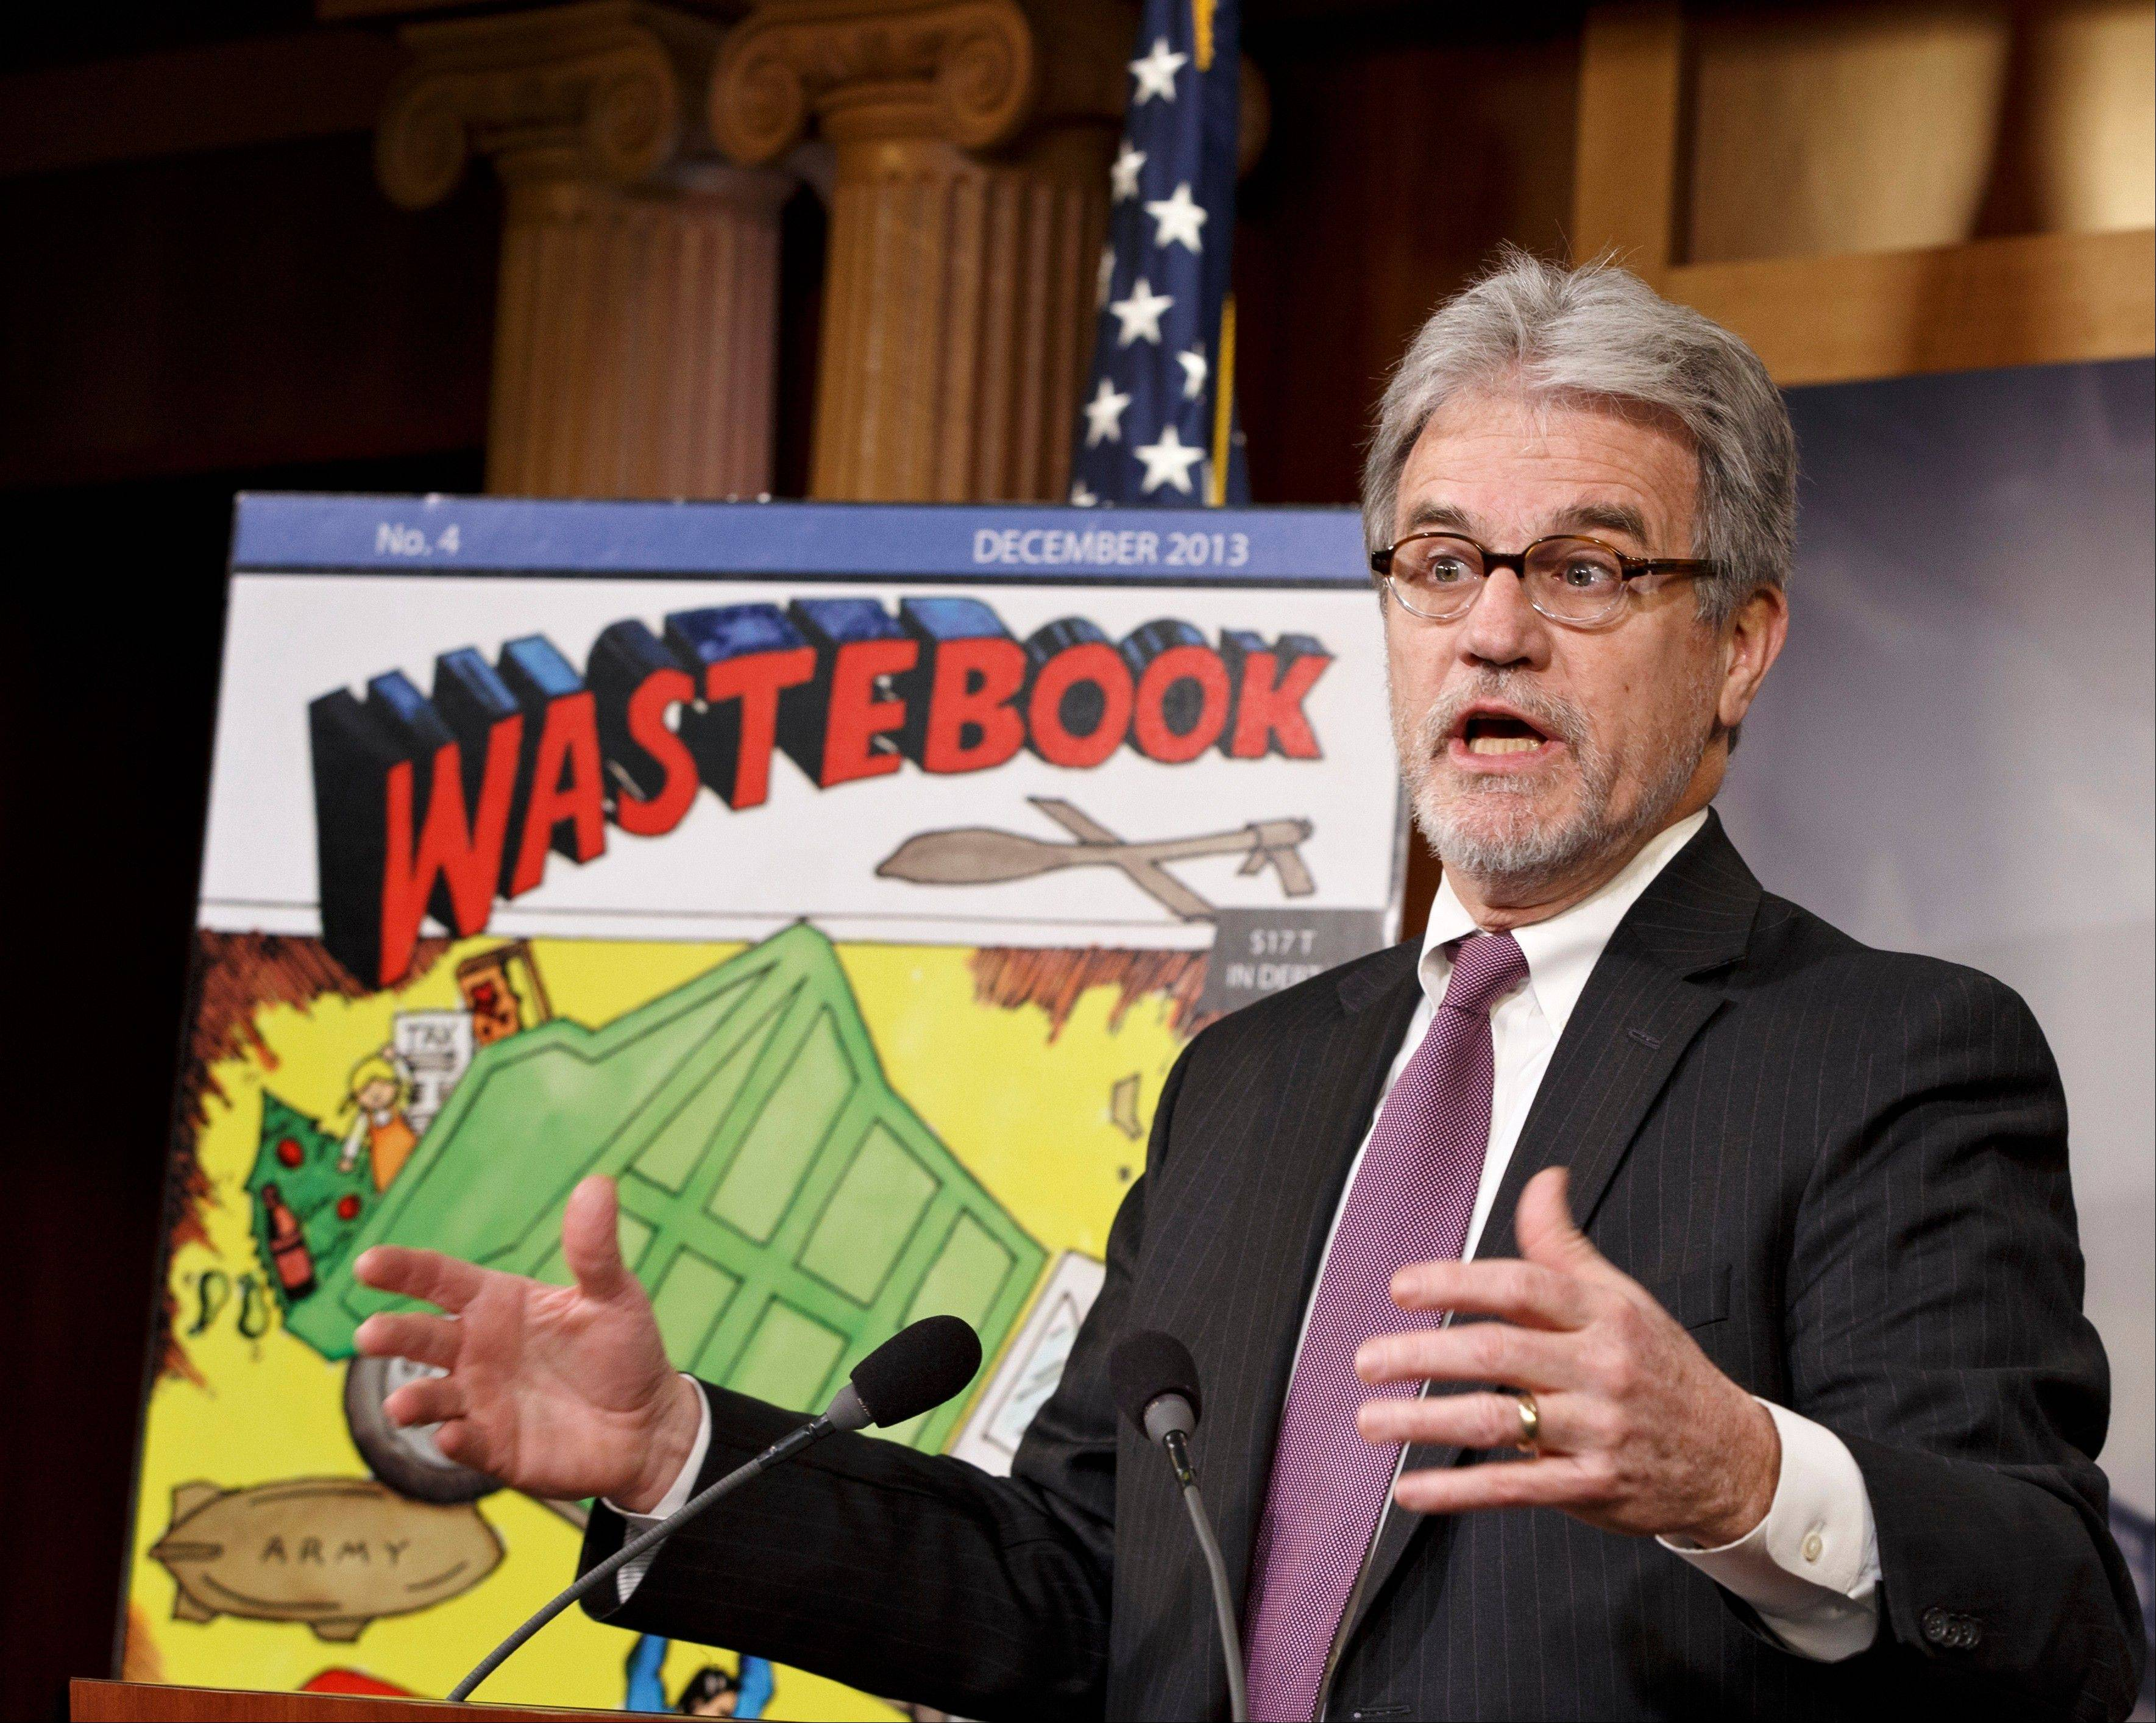 Sen. Tom Coburn, R-Okla., says he plans to finish the current year in office and resign his seat nearly two years before his term is scheduled to end.